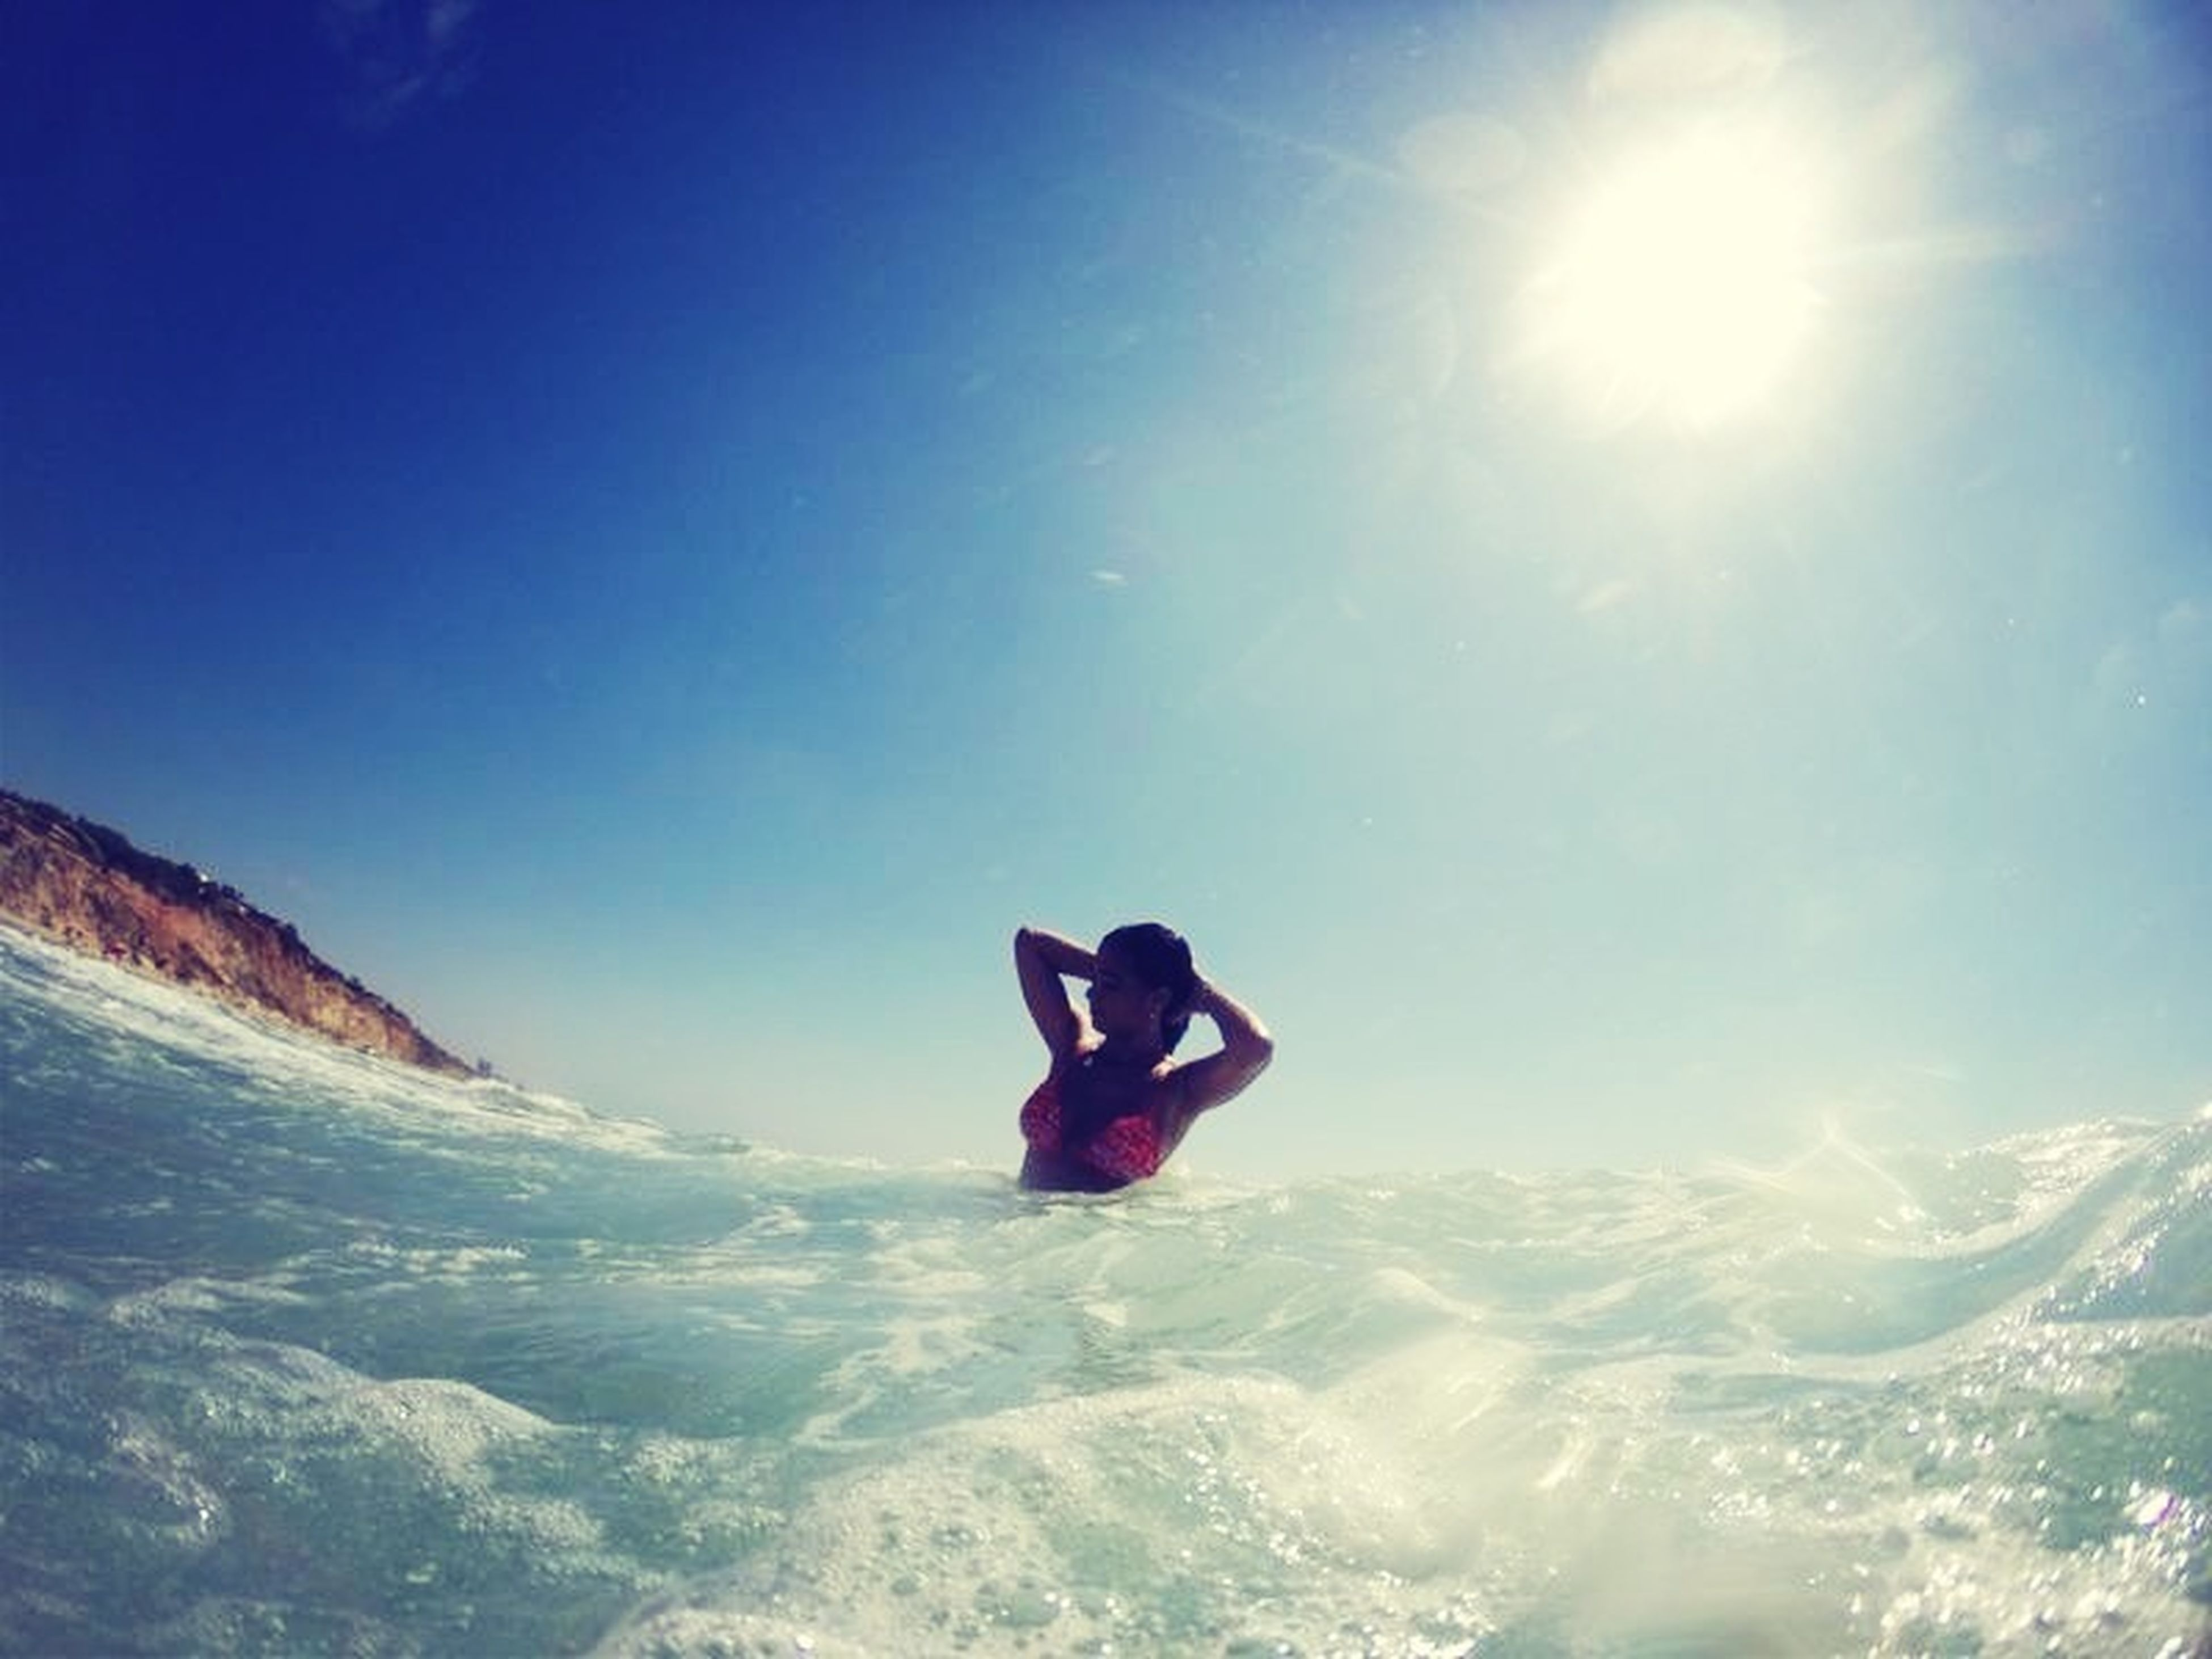 leisure activity, lifestyles, sunlight, blue, water, vacations, sea, extreme sports, adventure, sky, full length, young adult, enjoyment, beauty in nature, nature, sunny, sun, scenics